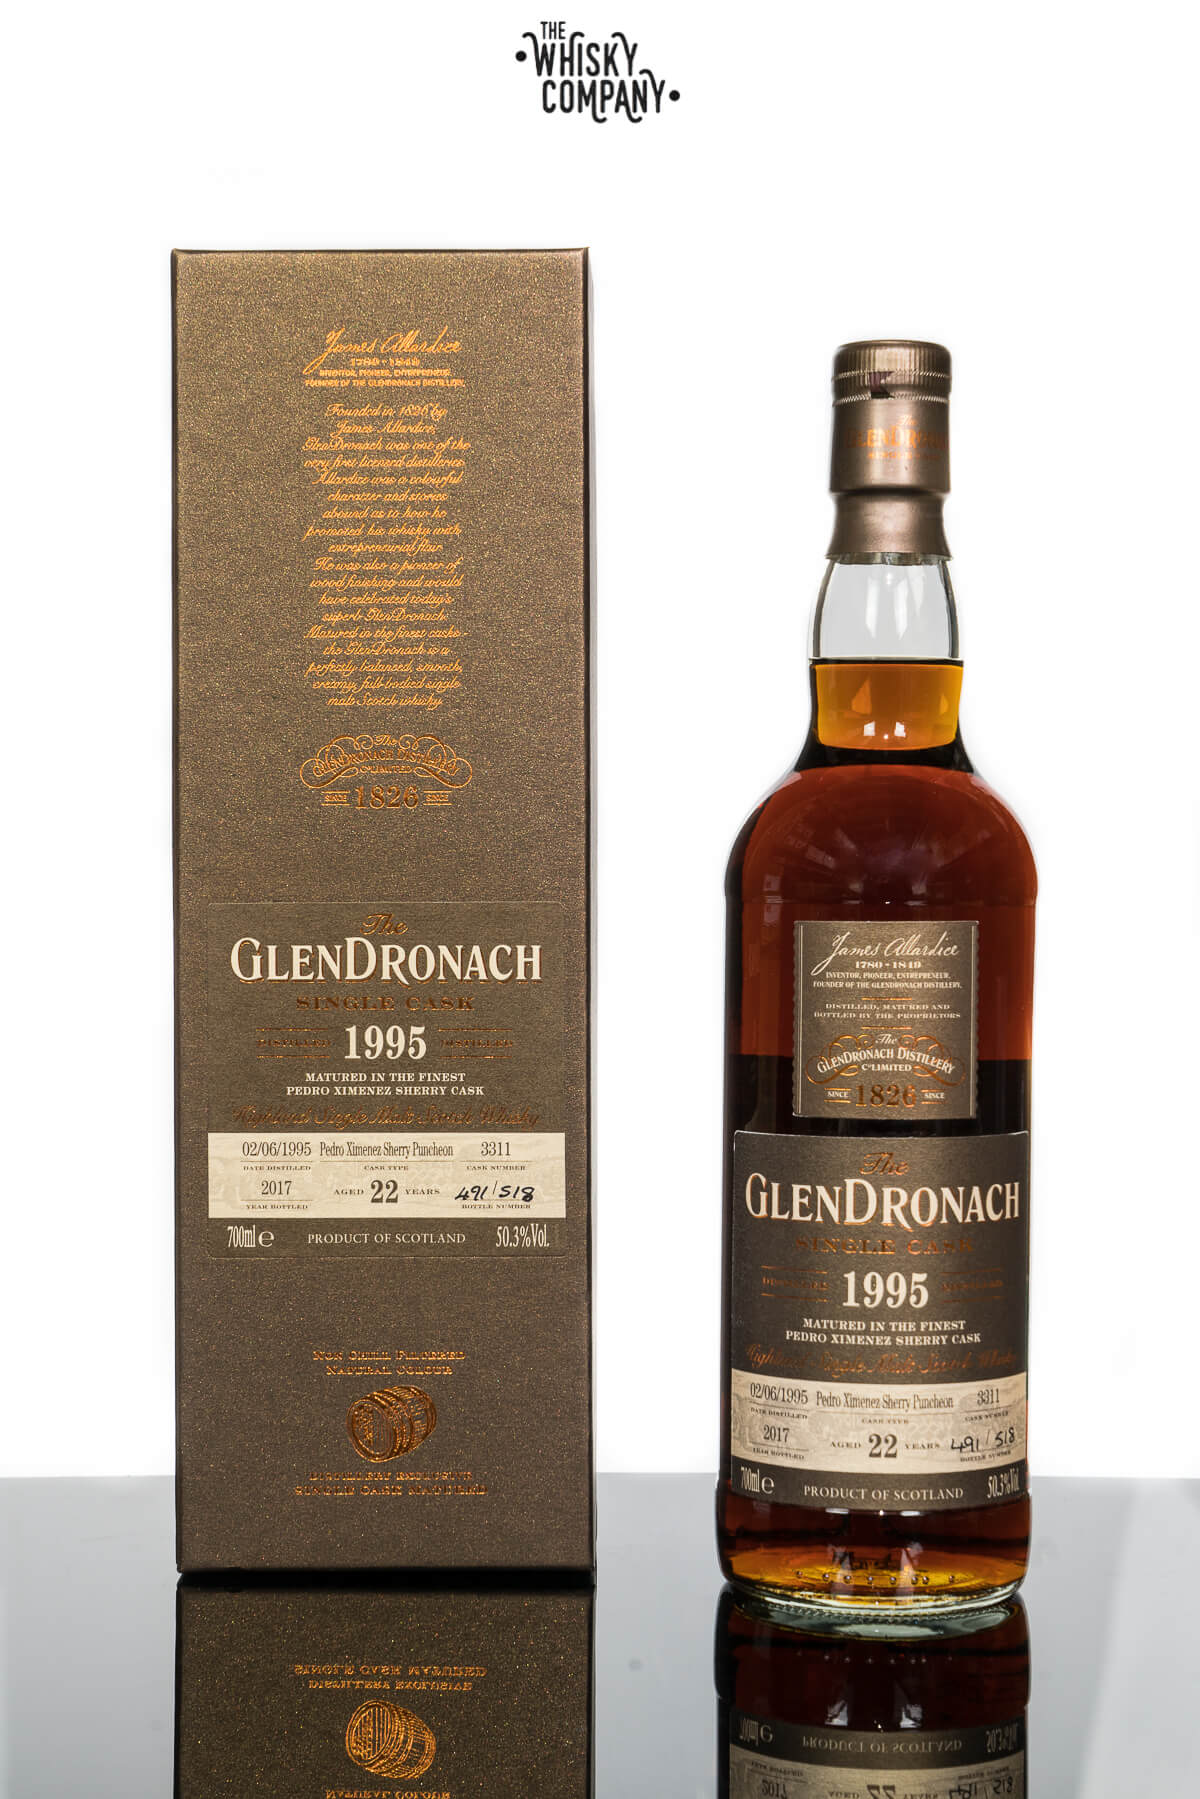 GlenDronach 22 Years Old 1995 Single Cask No. 3311 Batch 16 Single Malt Scotch Whisky (700ml)